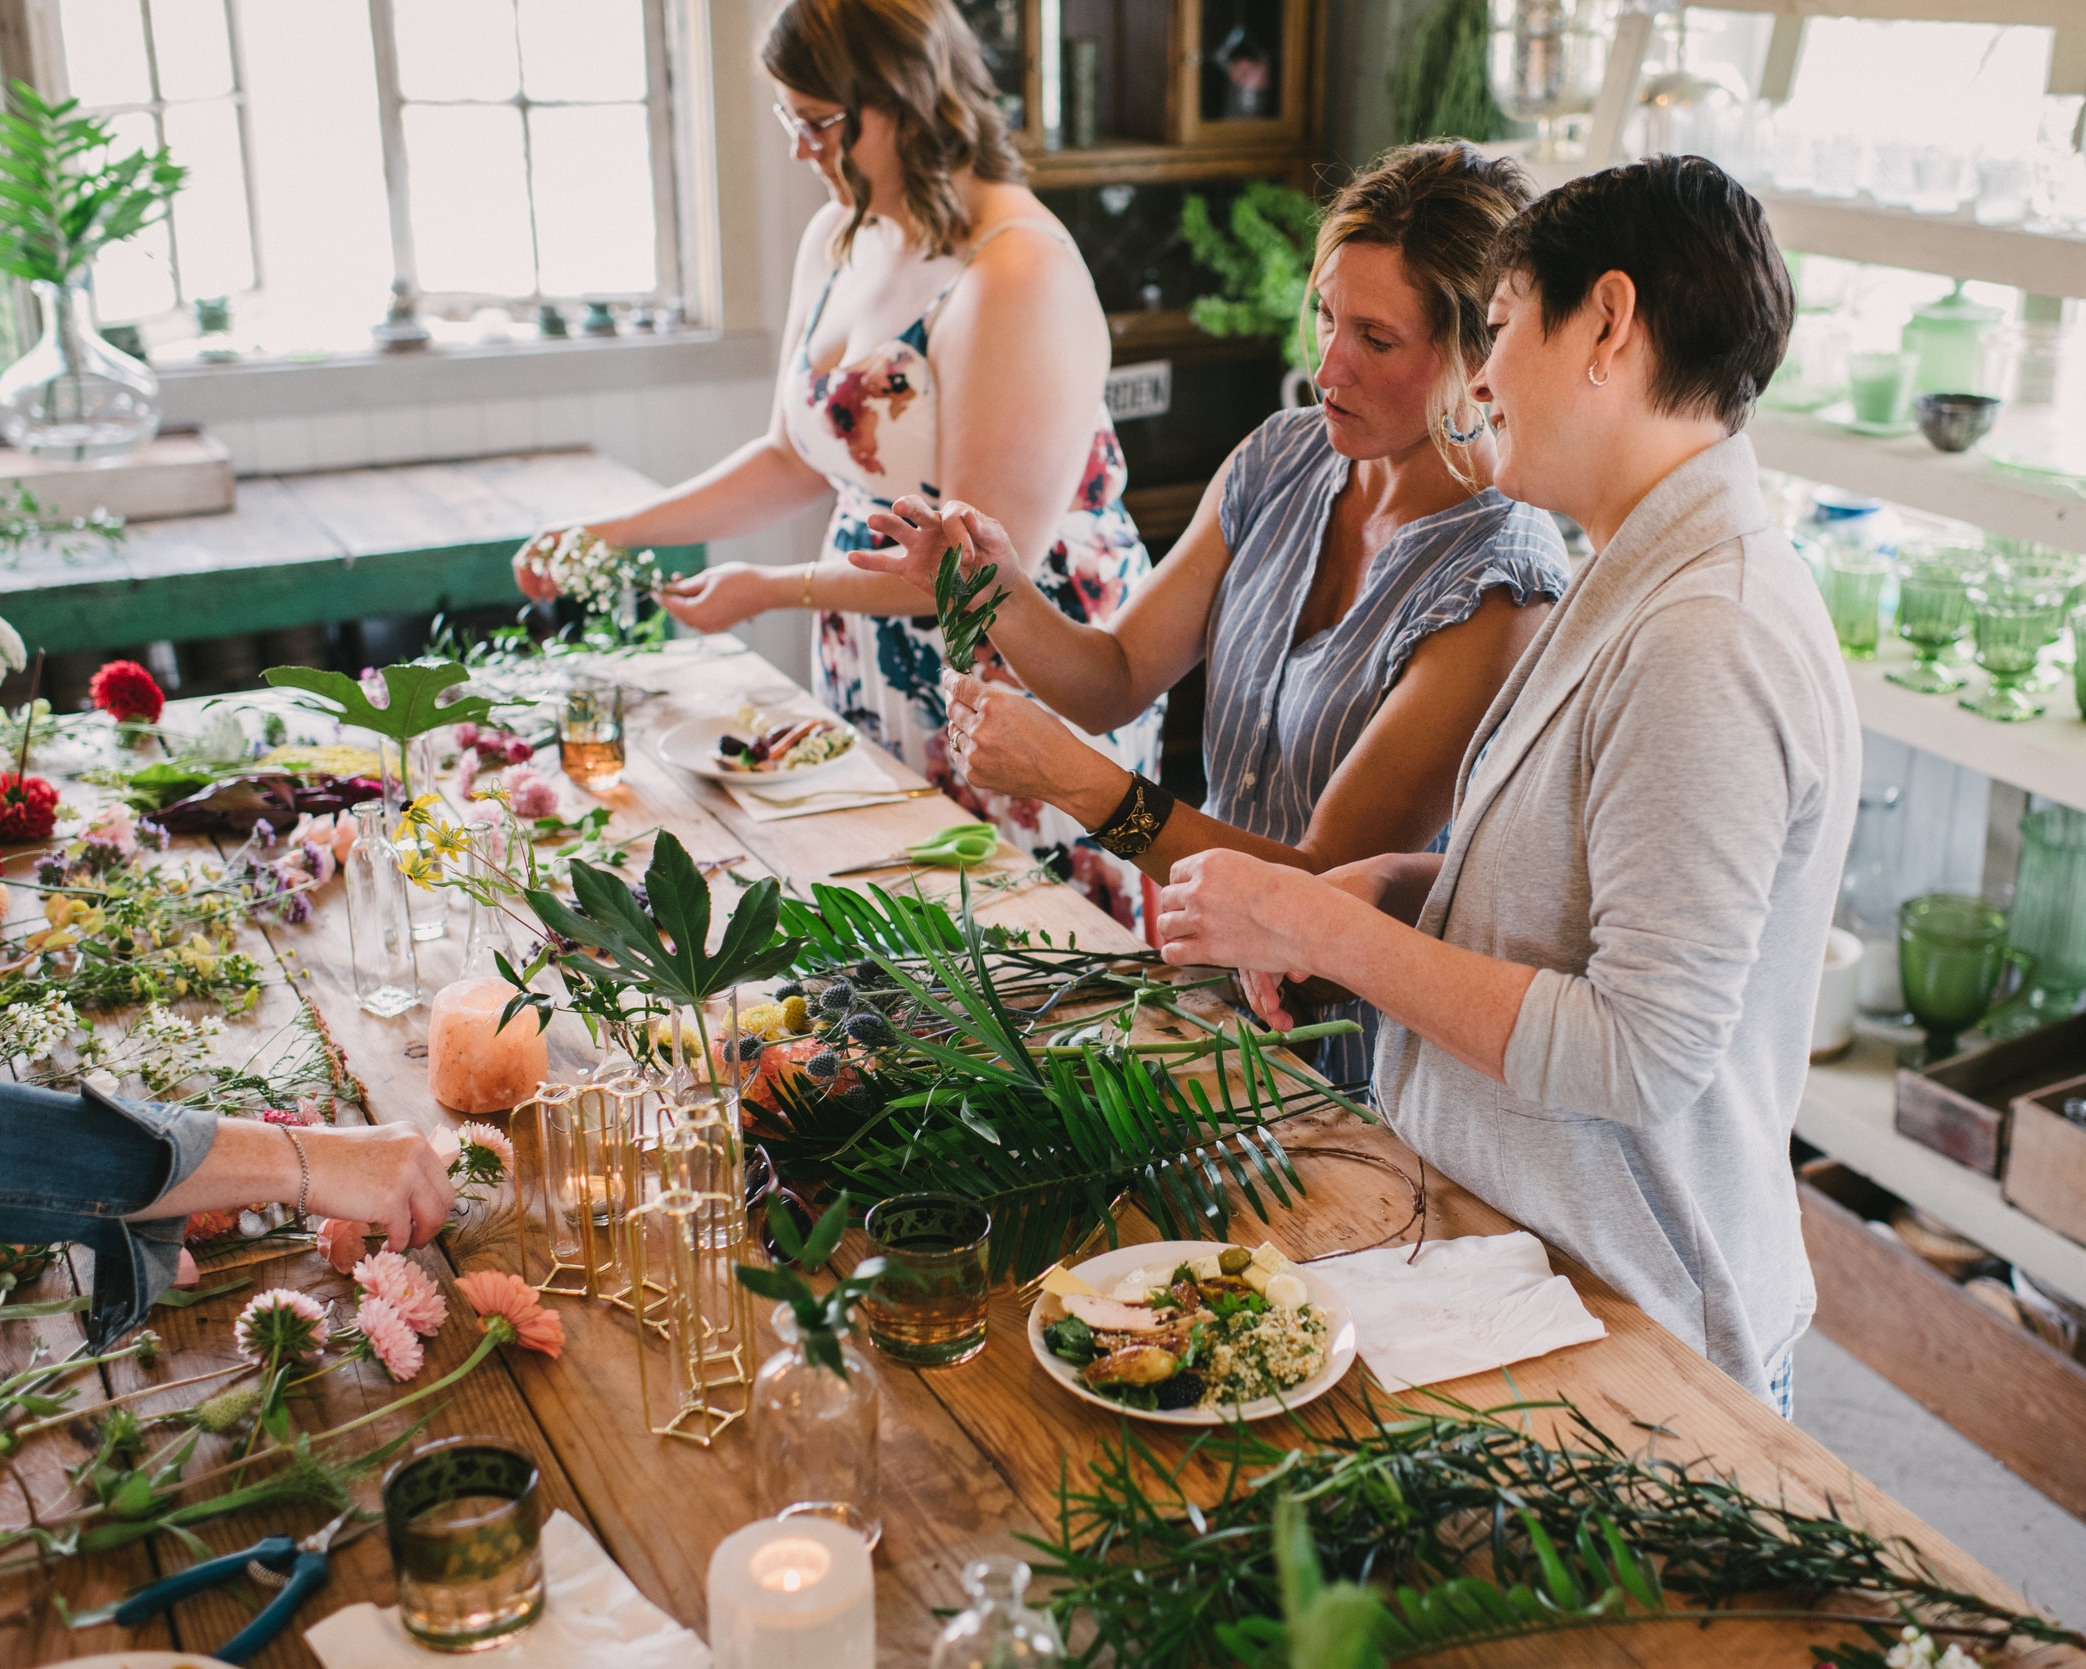 interact - Gather with your friends and for a hands-on learning experience as floral artists at our farm studio.